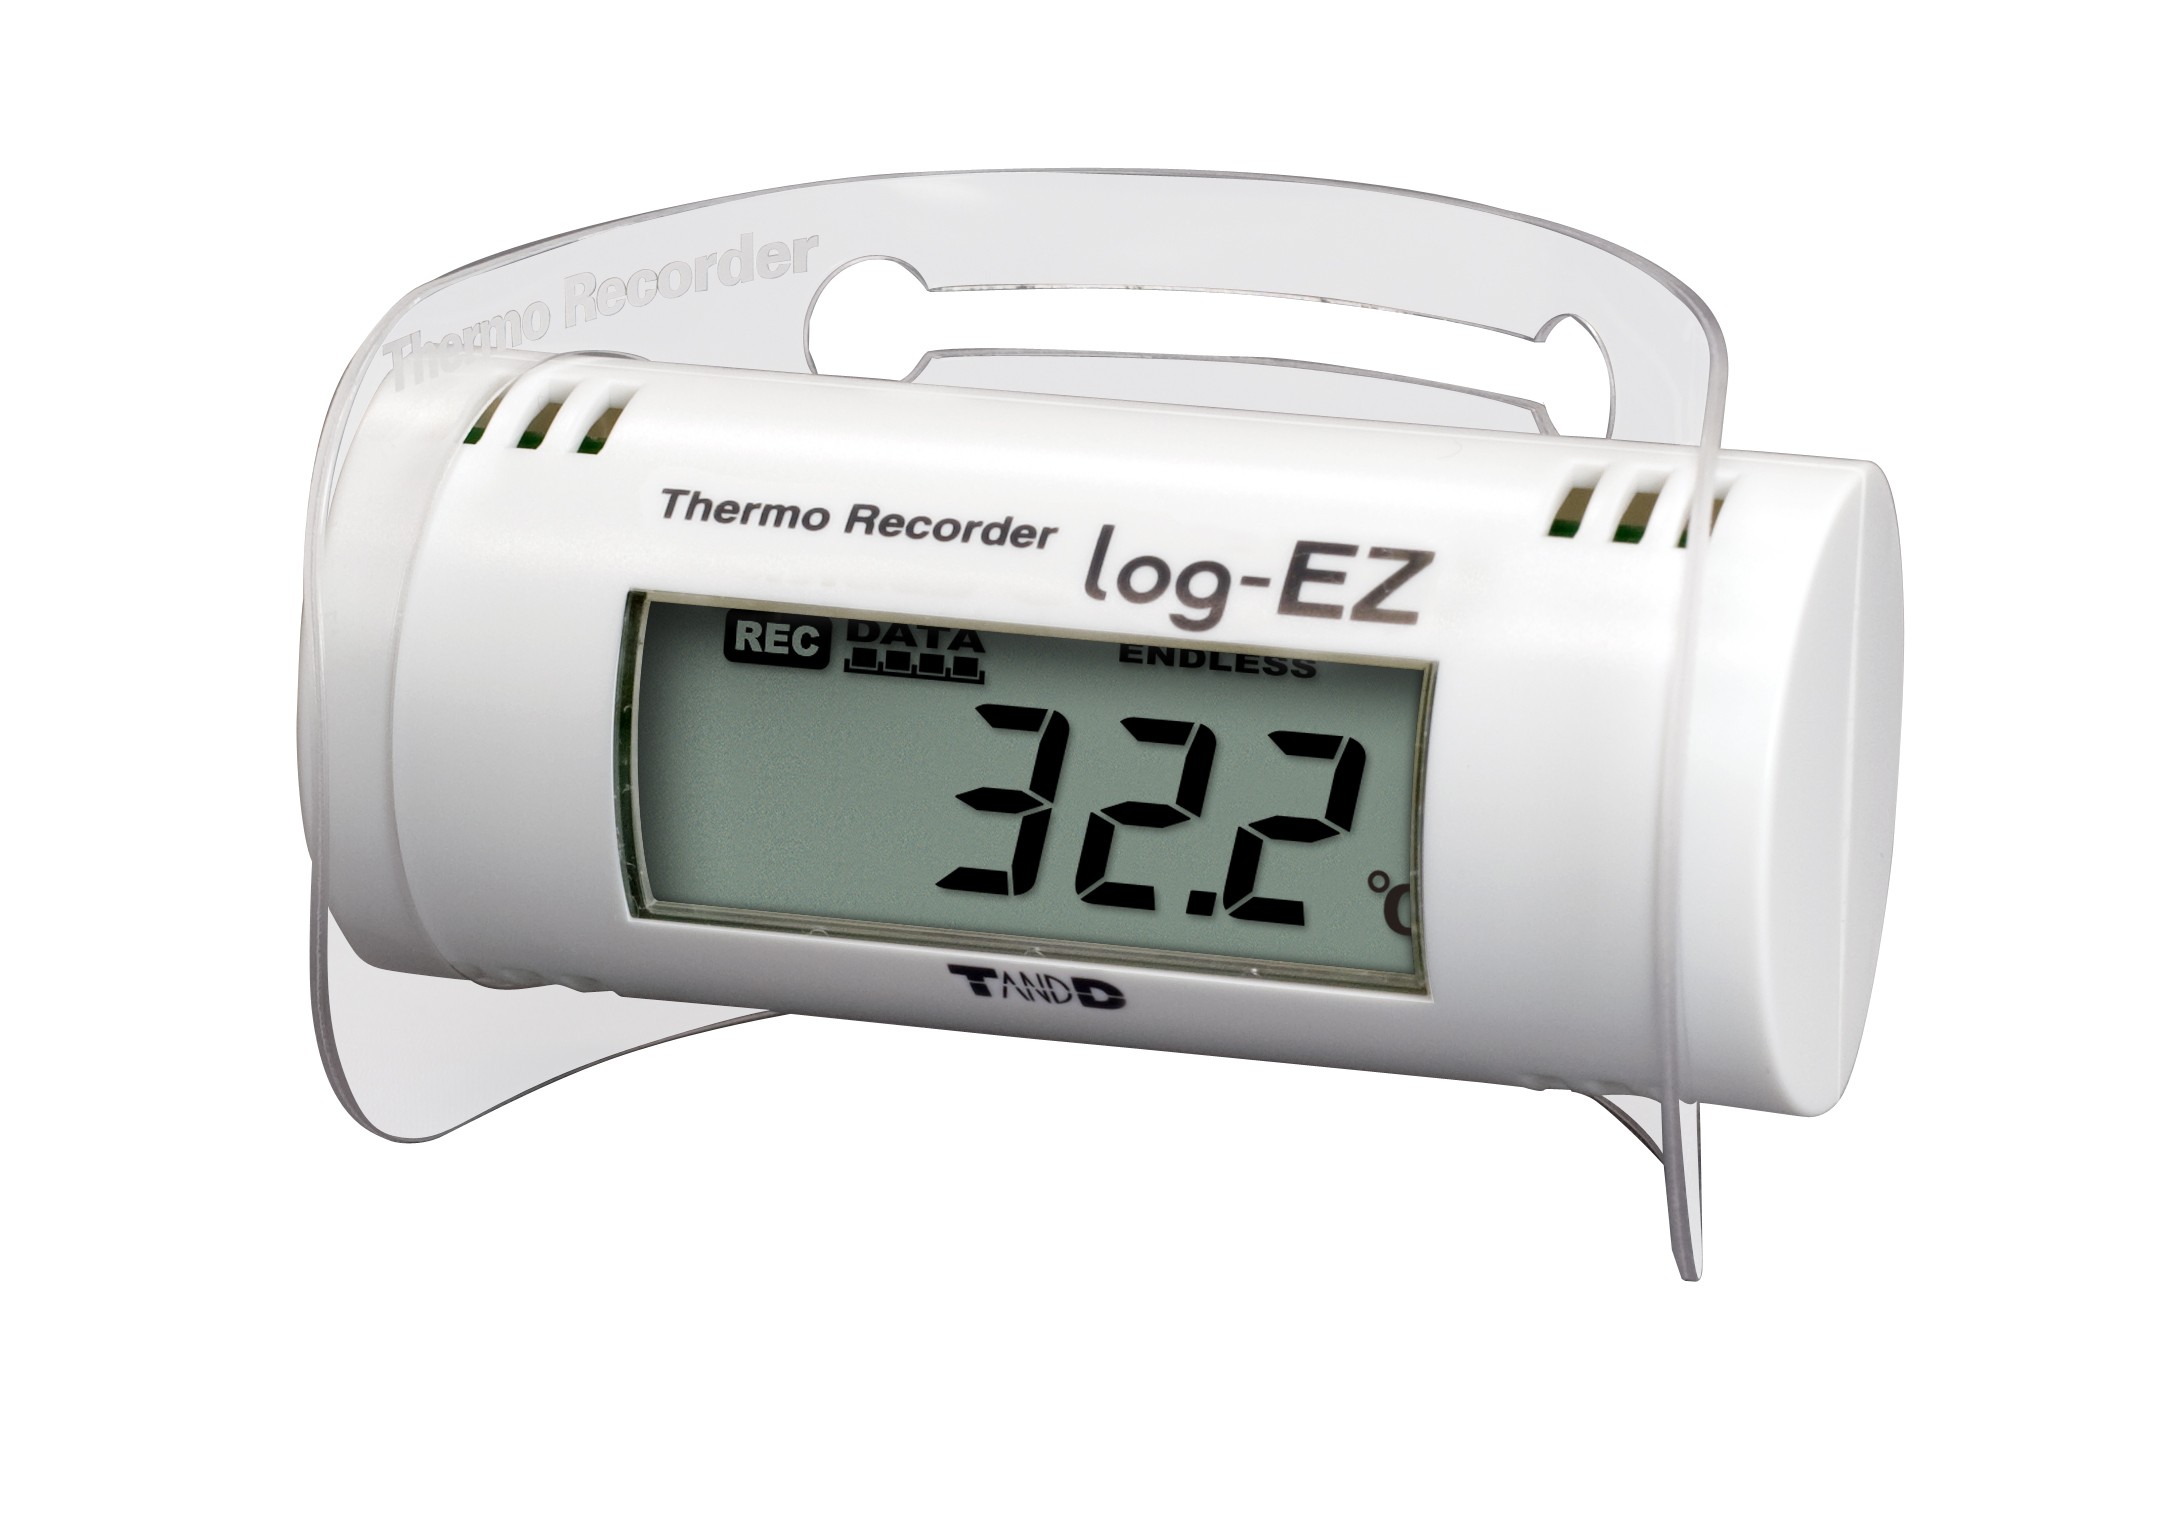 TADREC057: RTR-322 log-EZ Temperature/Humidity Thermo Recorder